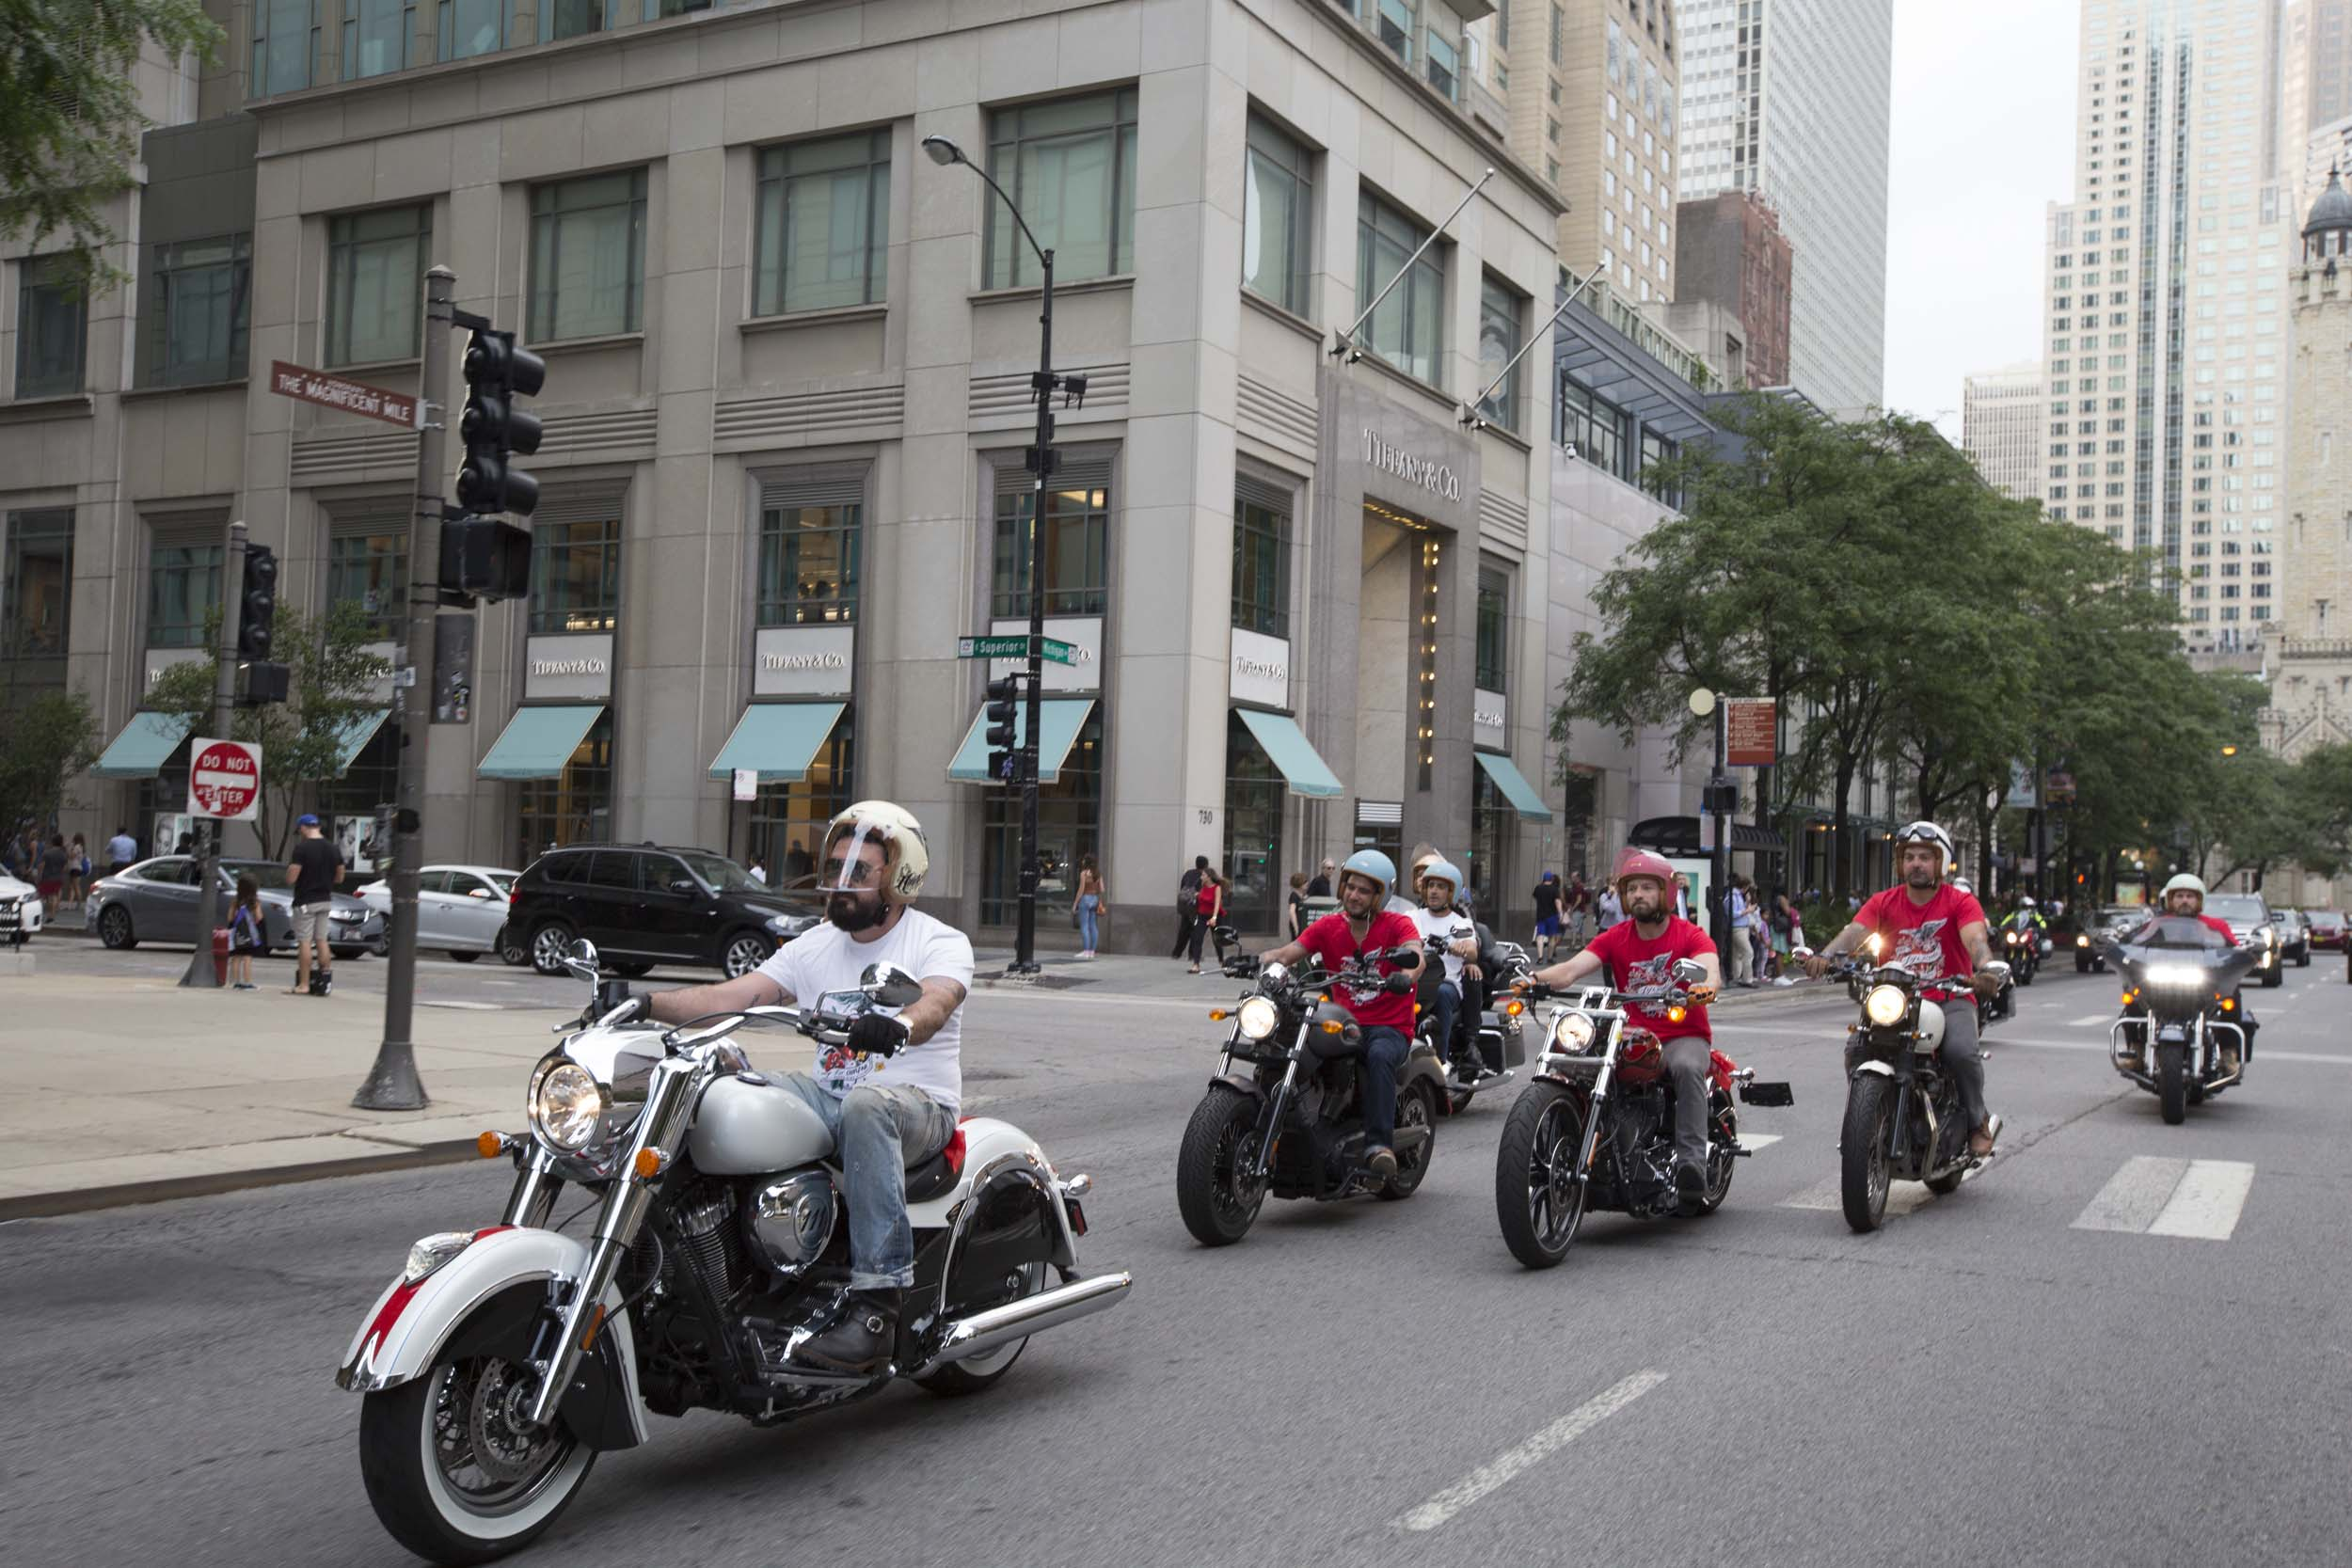 Kiehl's LifeRide for amfAR arrives in Chicago.